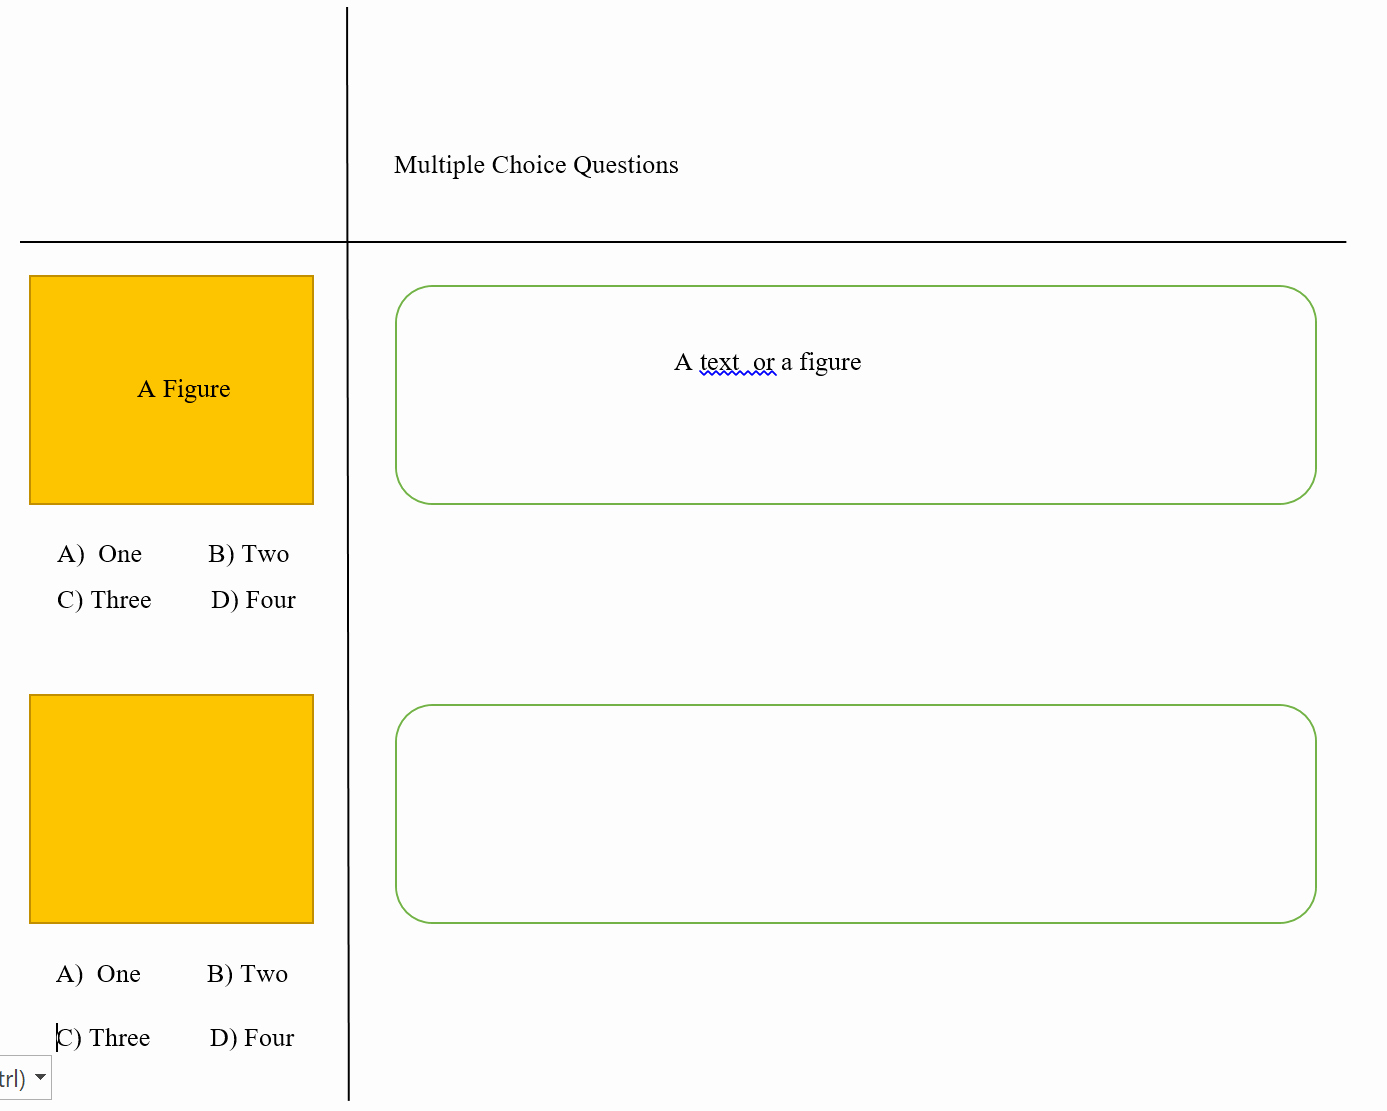 Multiple Choice Test Template Elegant Graphics Creating A Special Template for Multiple Choice